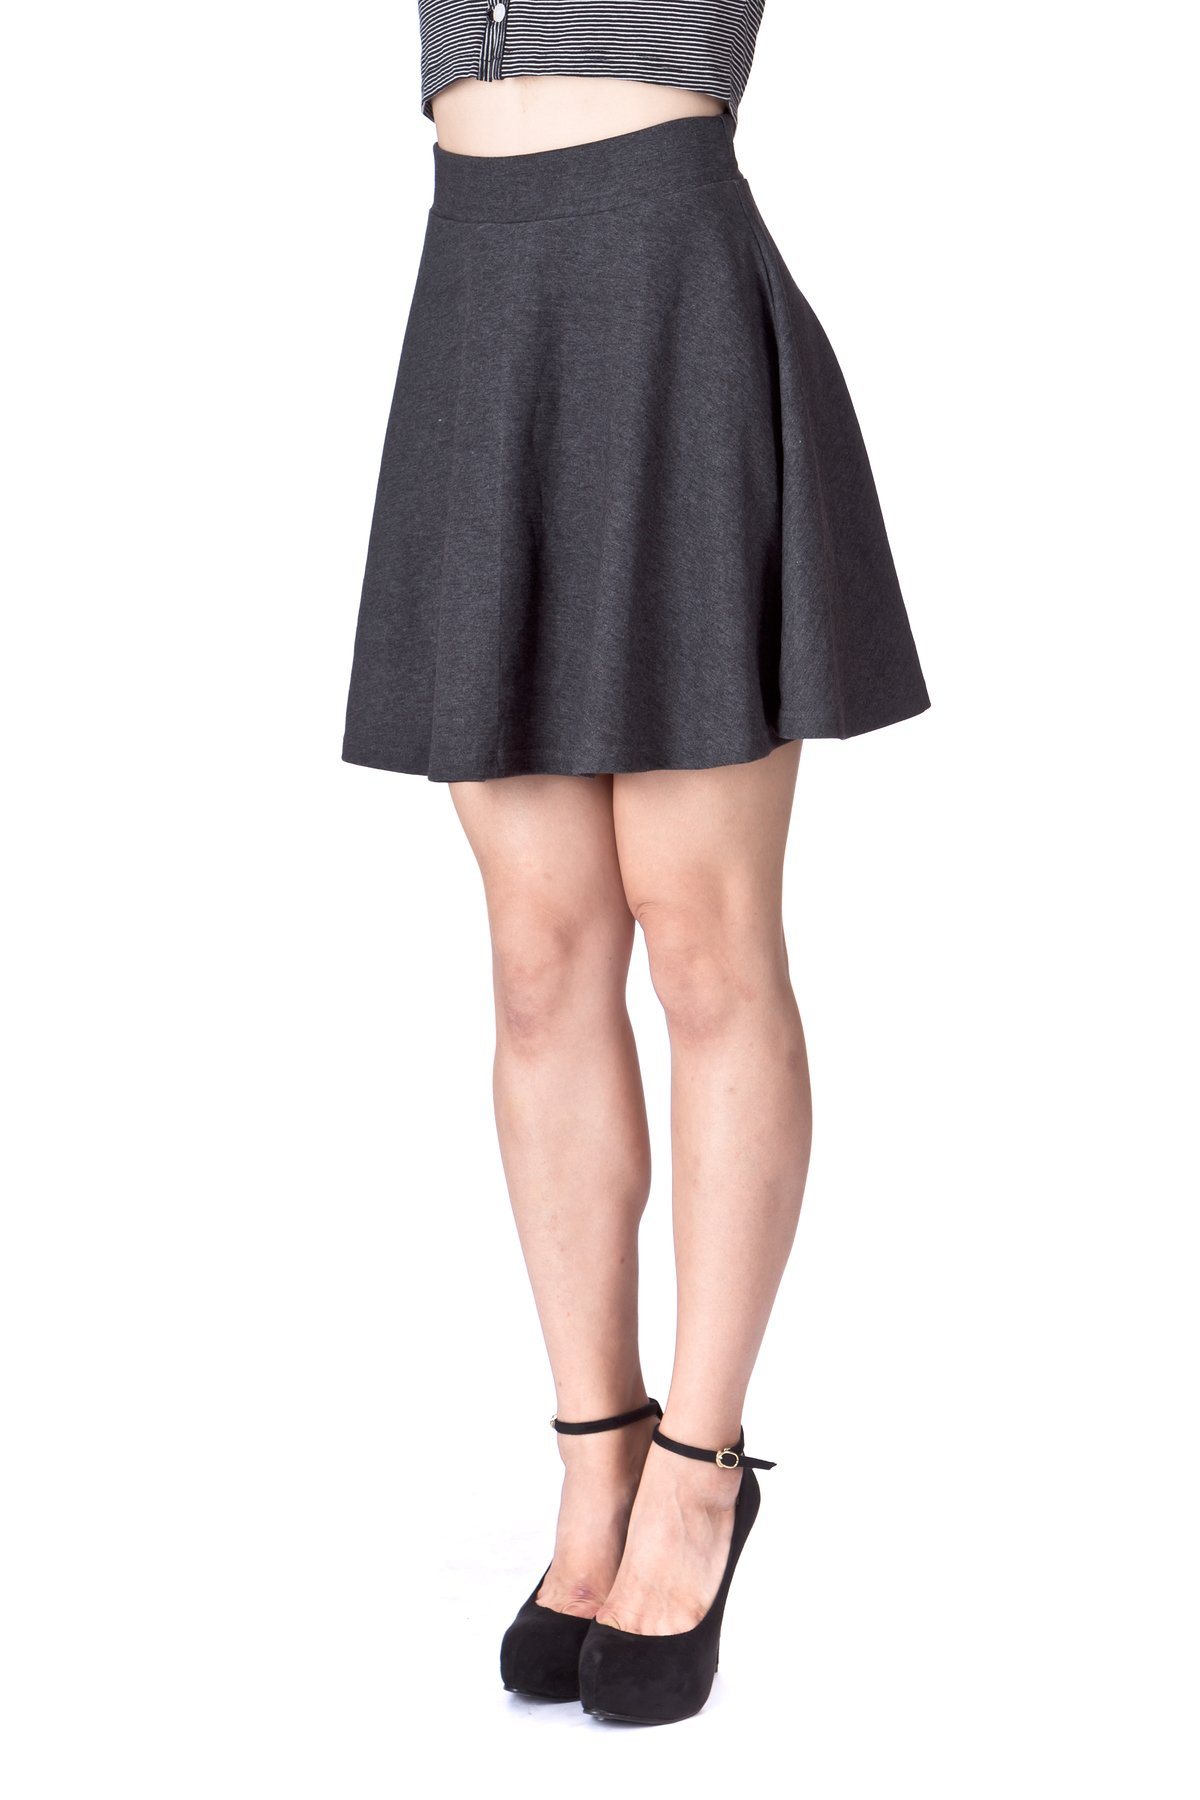 Basic Solid Stretchy Cotton High Waist A line Flared Skater Mini Skirt Charcoal 06 1